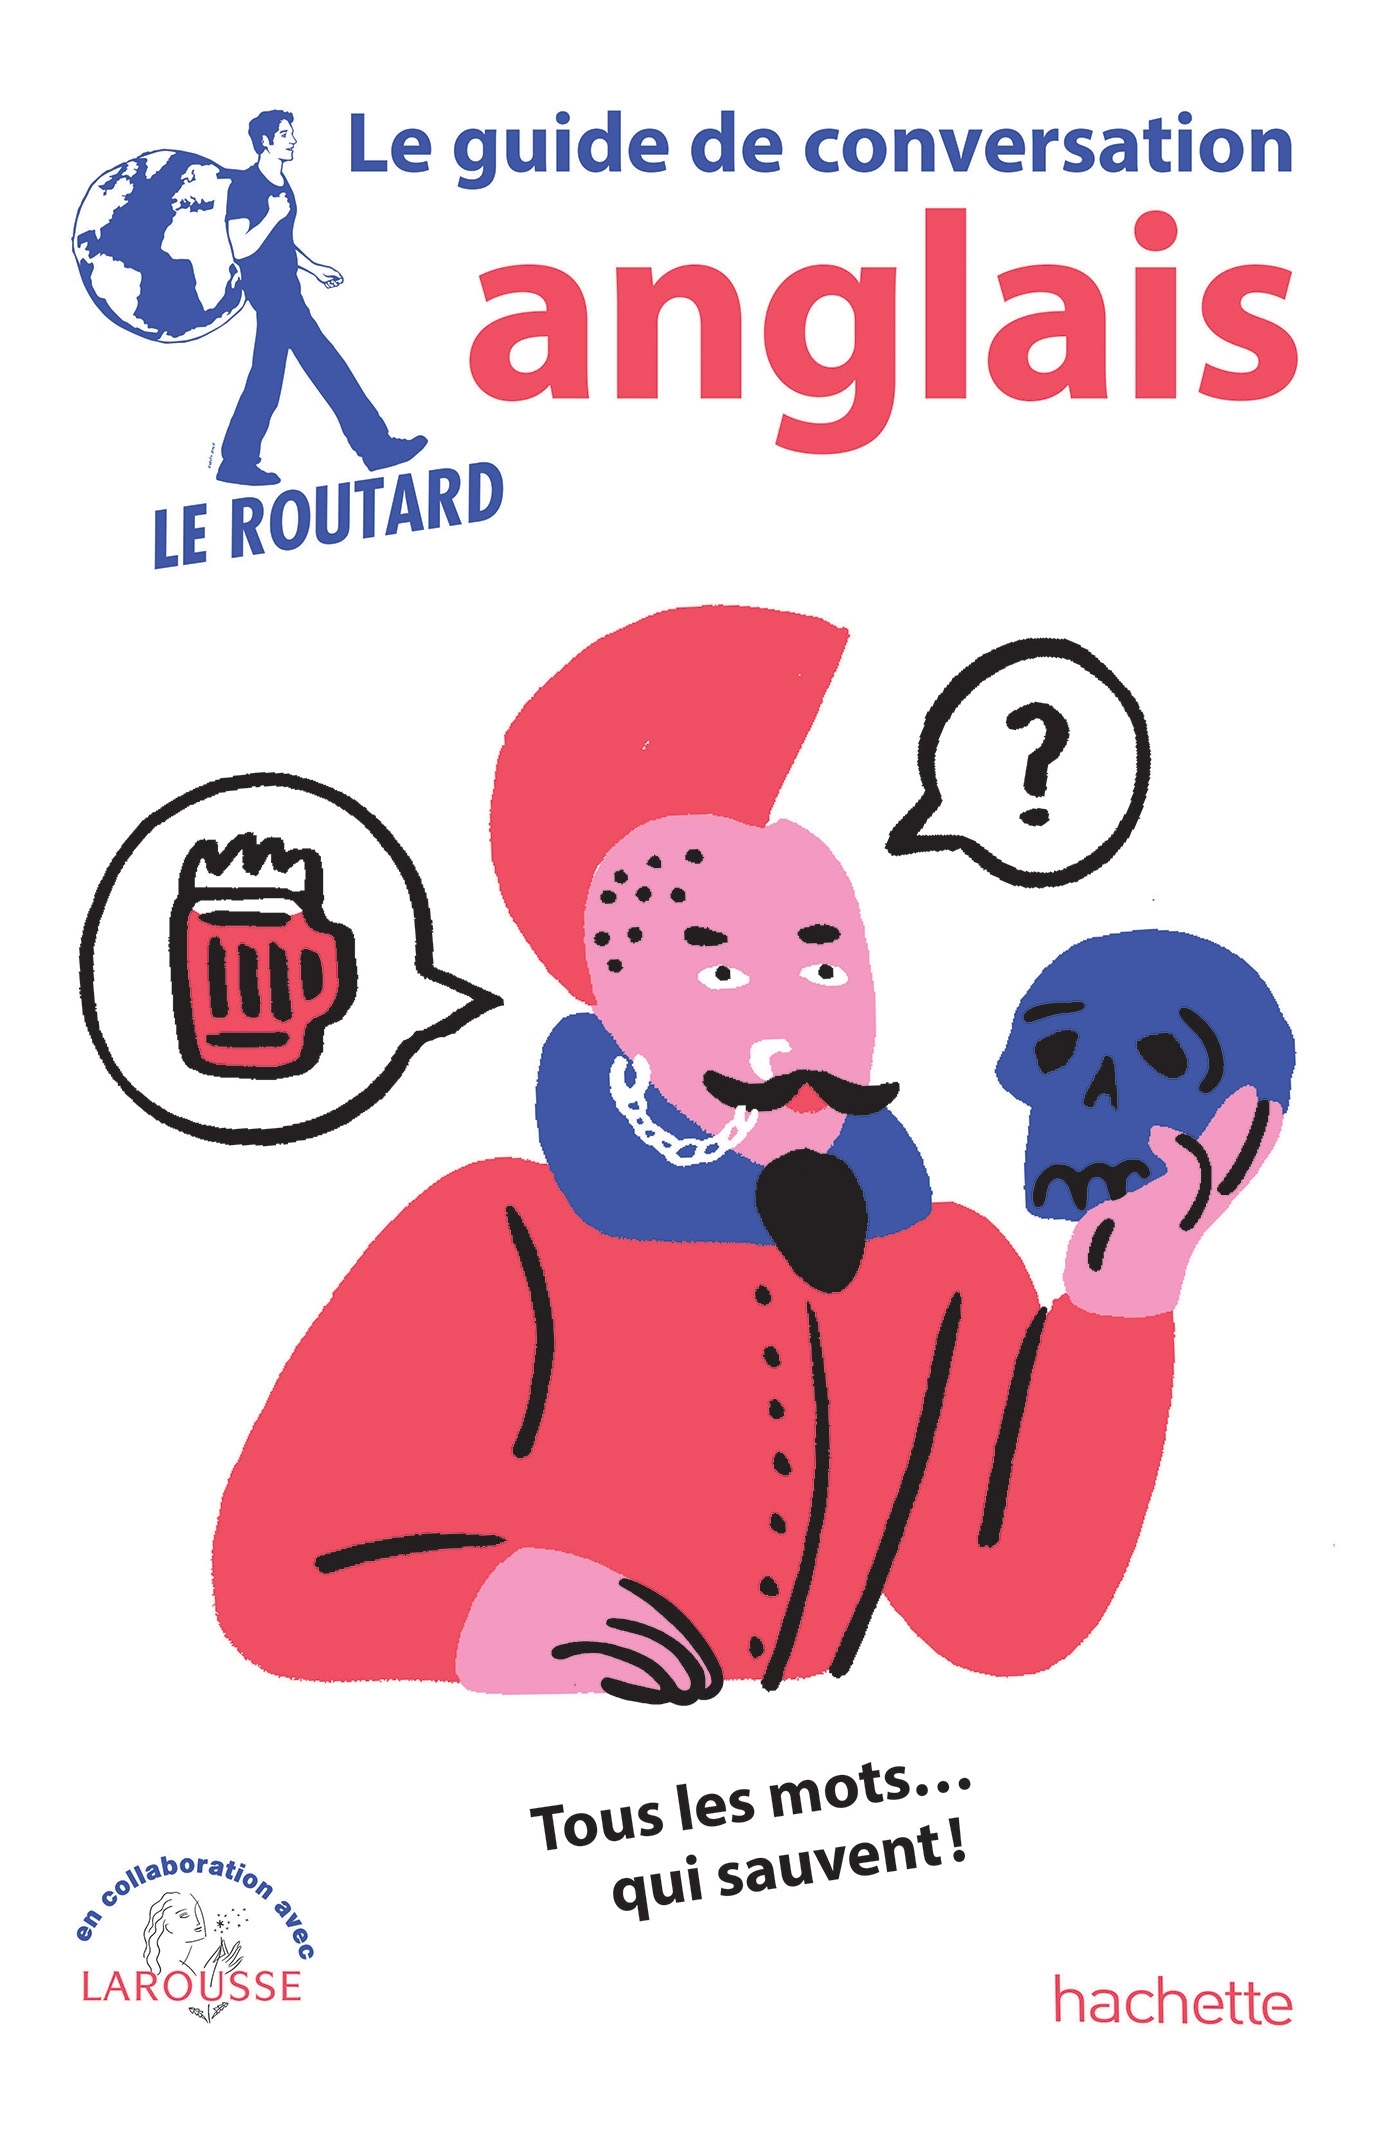 LE ROUTARD GUIDE DE CONVERSATION ANGLAIS